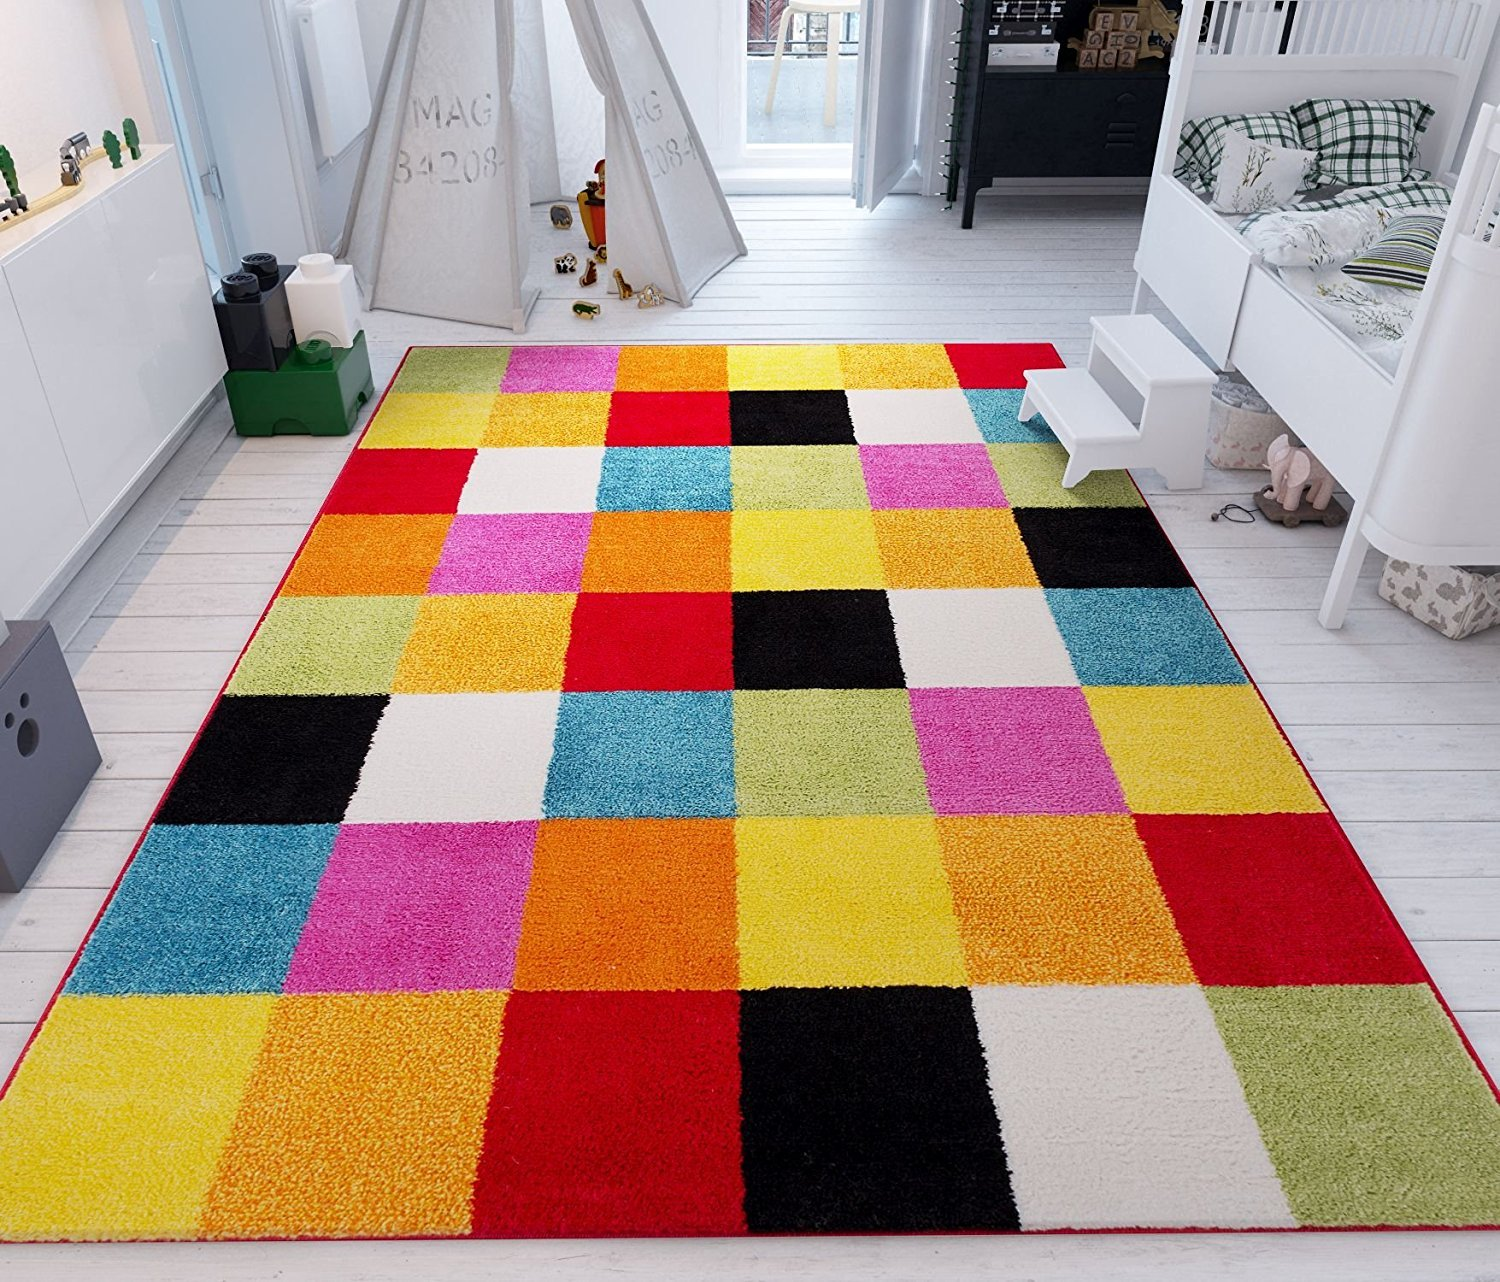 Well Woven Modern Rug Squares Multi Geometric Accent 5' x 7' Area Rug Entry Way Bright Kids Room Kitchn Bedroom Carpet Bathroom Soft Durable Area Rug by Well Woven